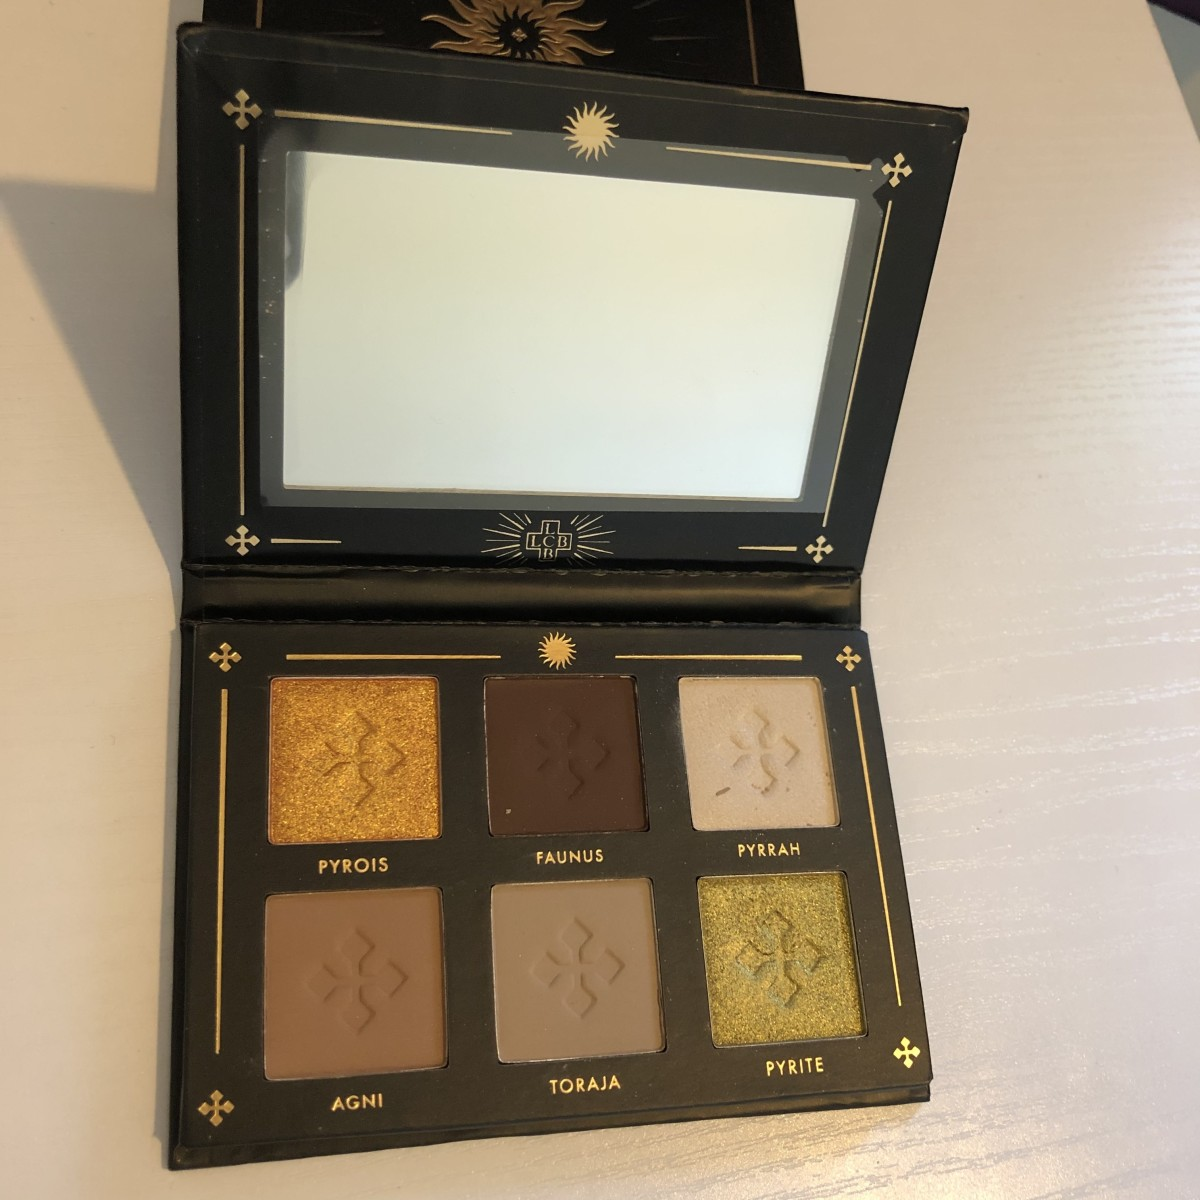 lovecraft-beauty-warm-rituals-eyeshadow-palette-review